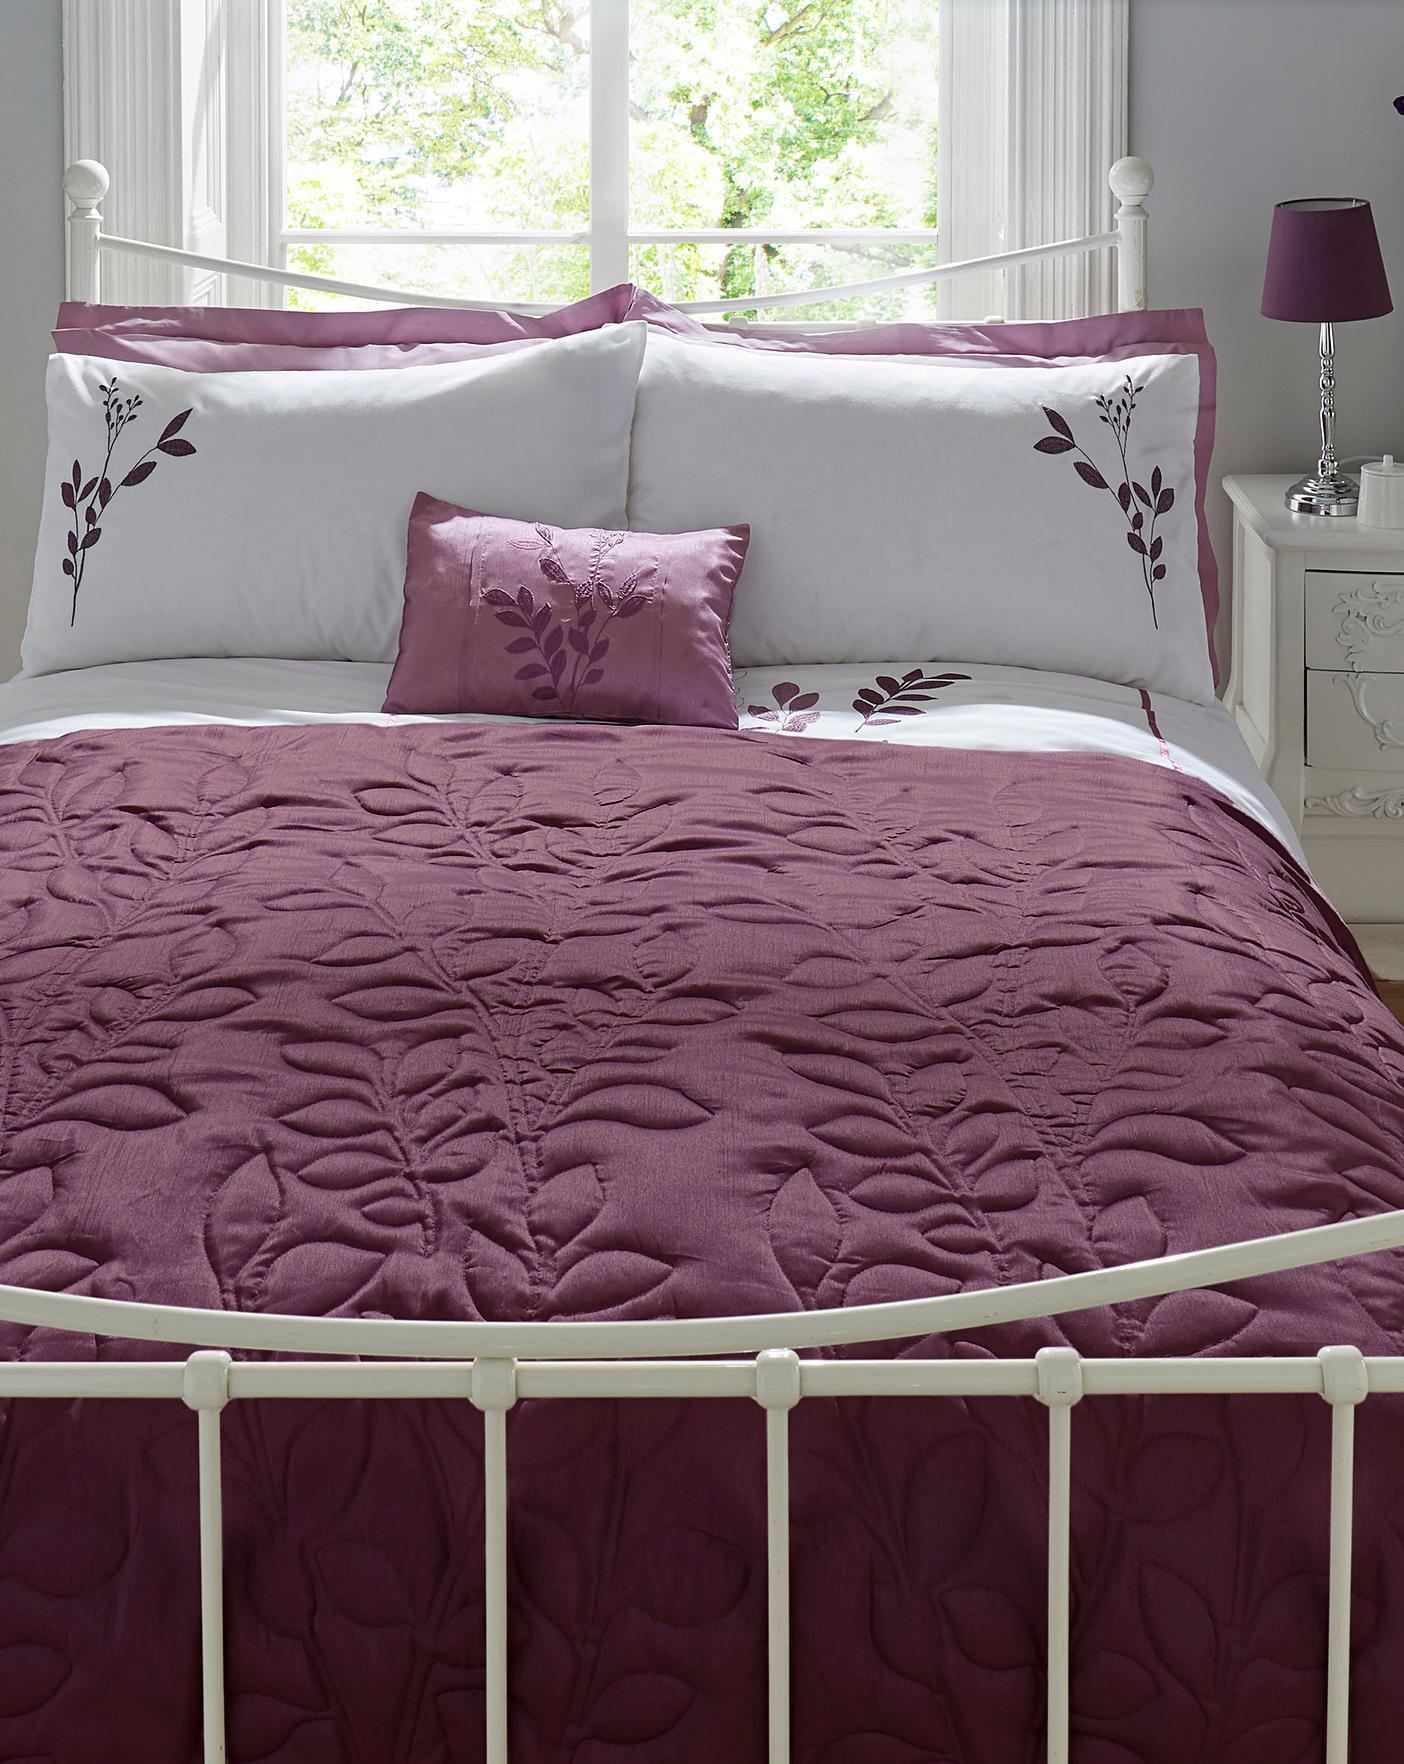 Emilie Bedroom Collection: Emily Embellished Quilted Throwover